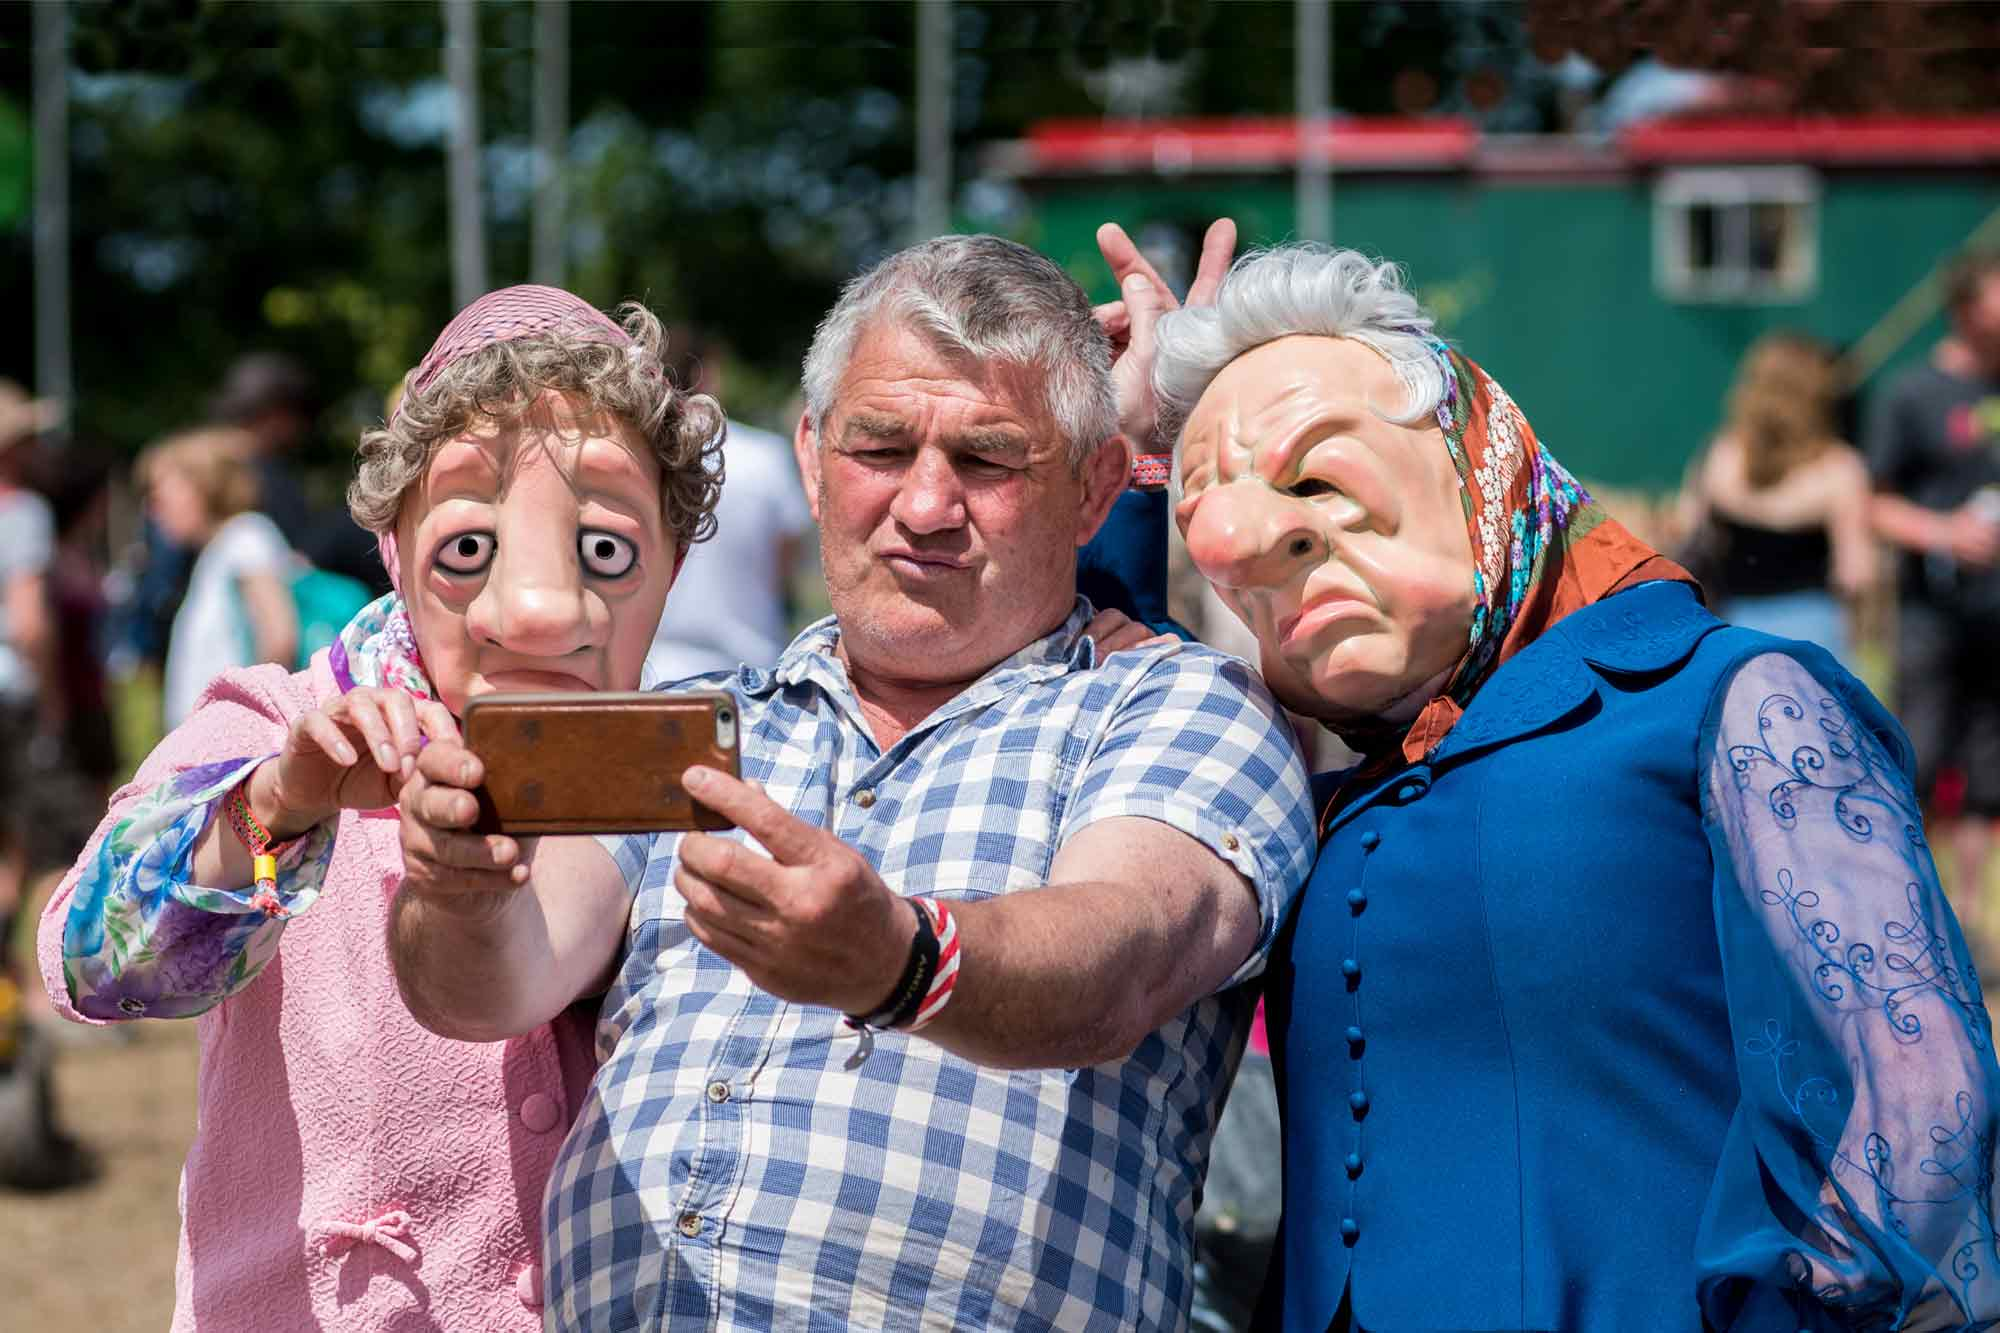 Crimplene Crusaders take a selfie at Glastonbury Festival